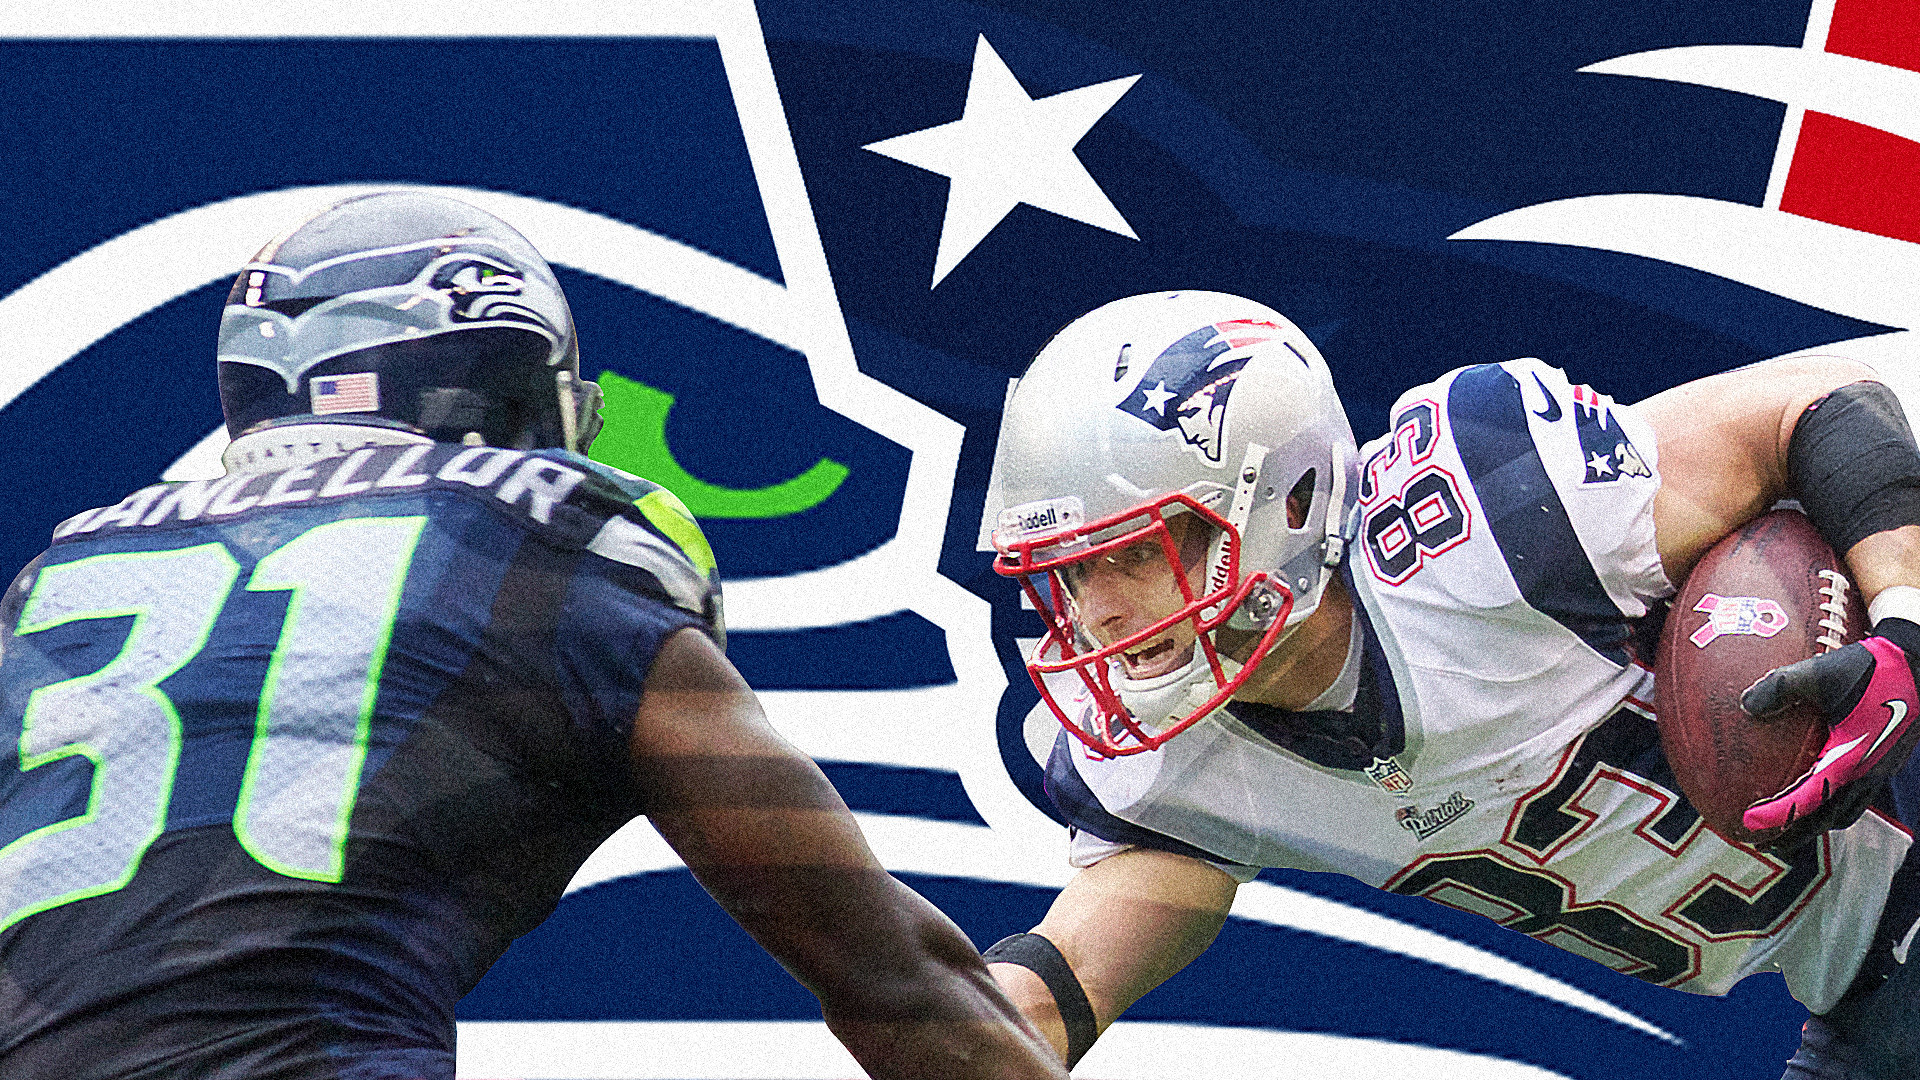 1920x1080 New England vs Seattle